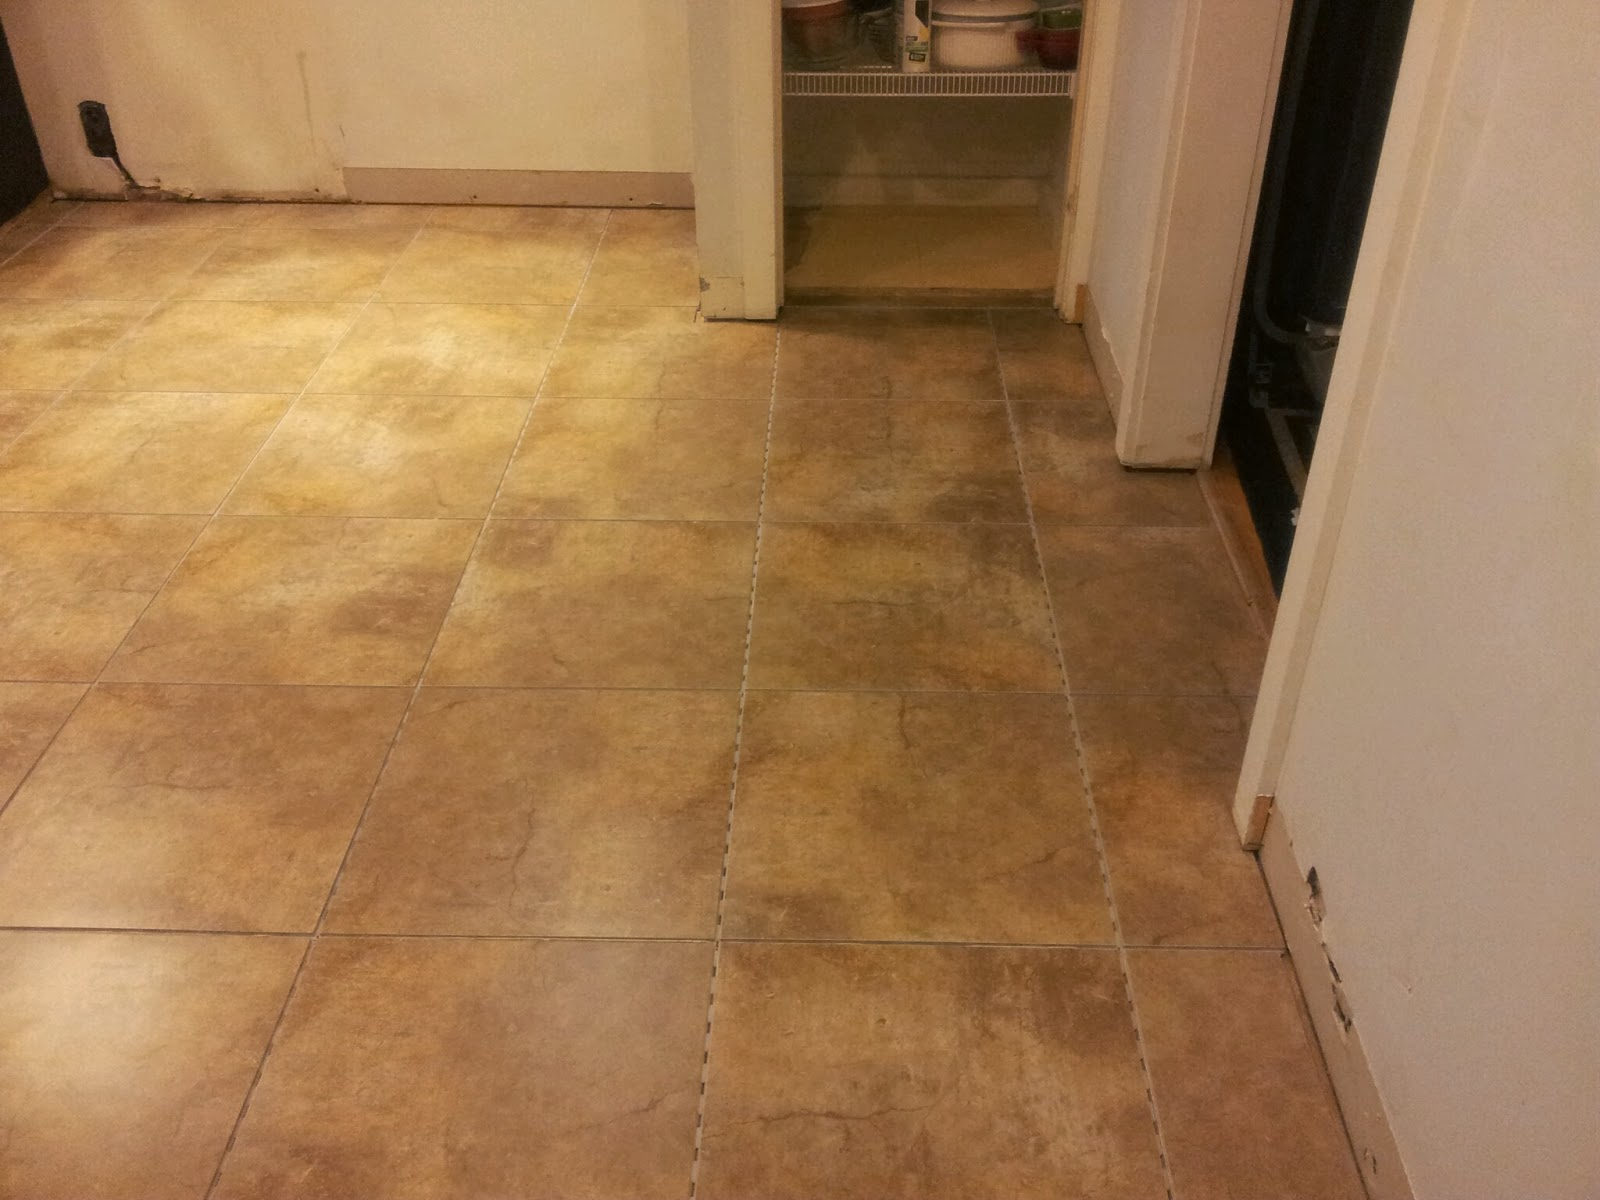 Kitchen Ceramic Tile Flooring Installing Snapstone Kitchen Floor Tile For Our Home Remodel Ian